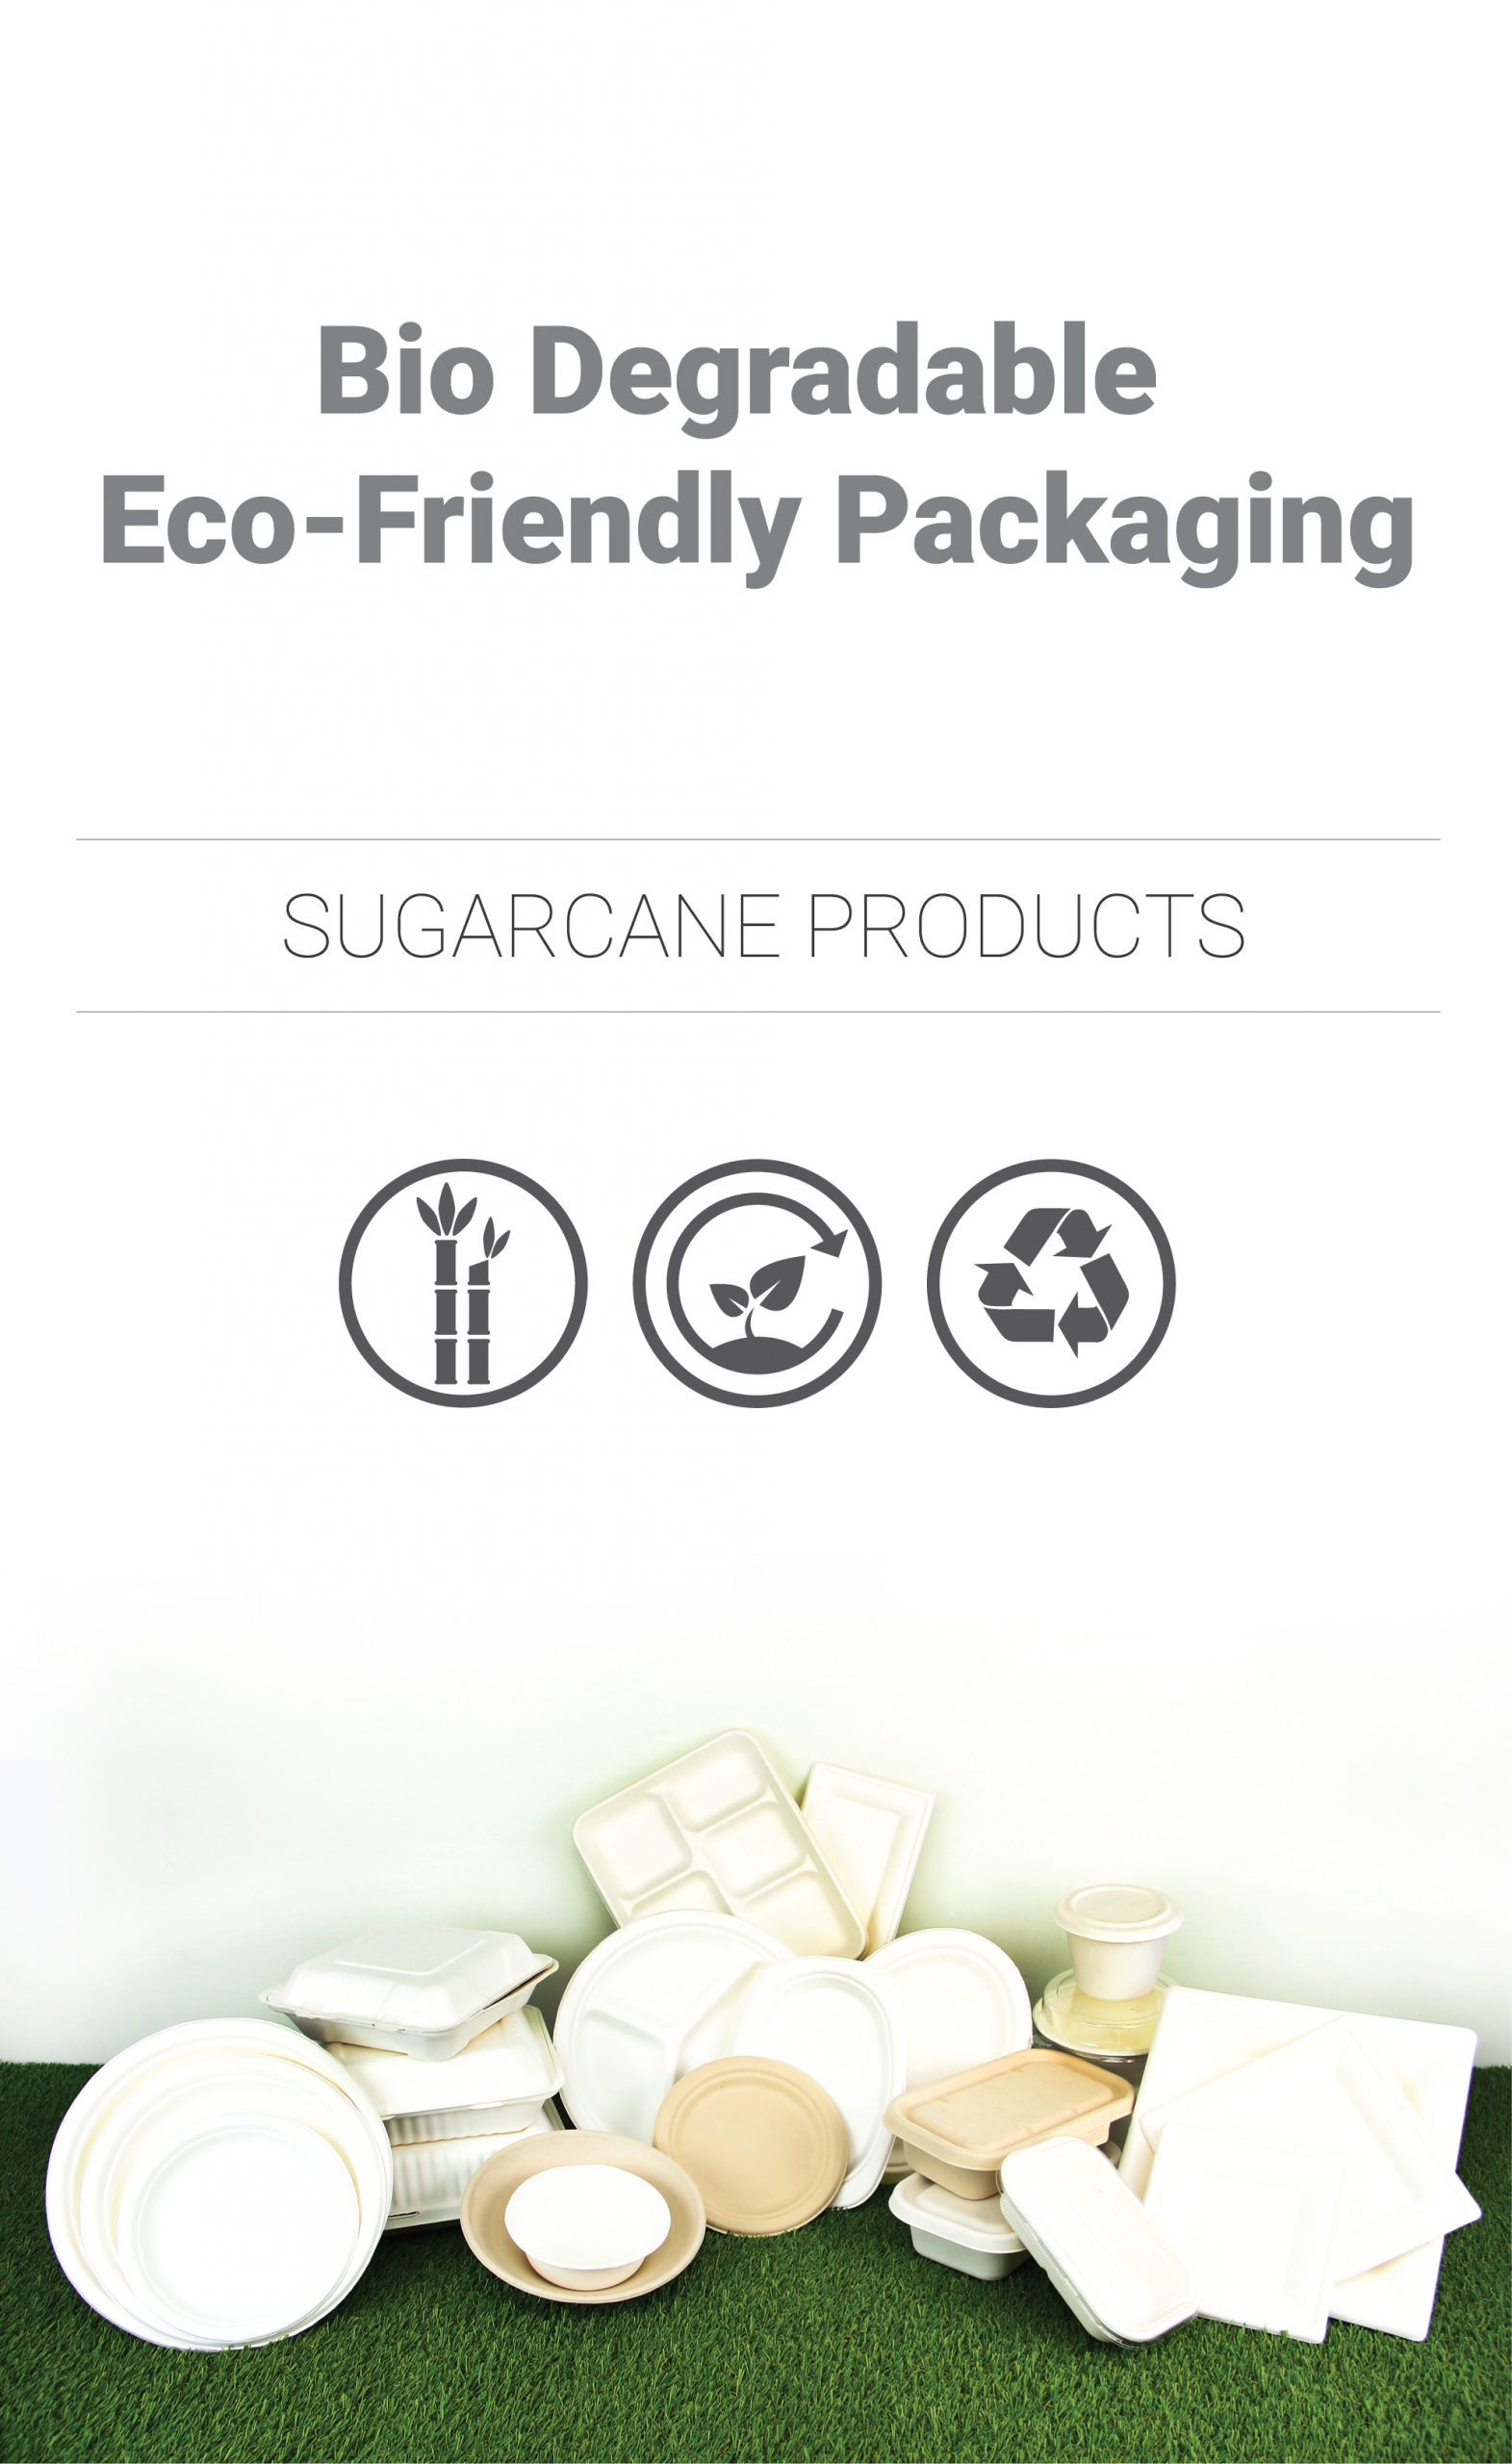 Sugarcane Products